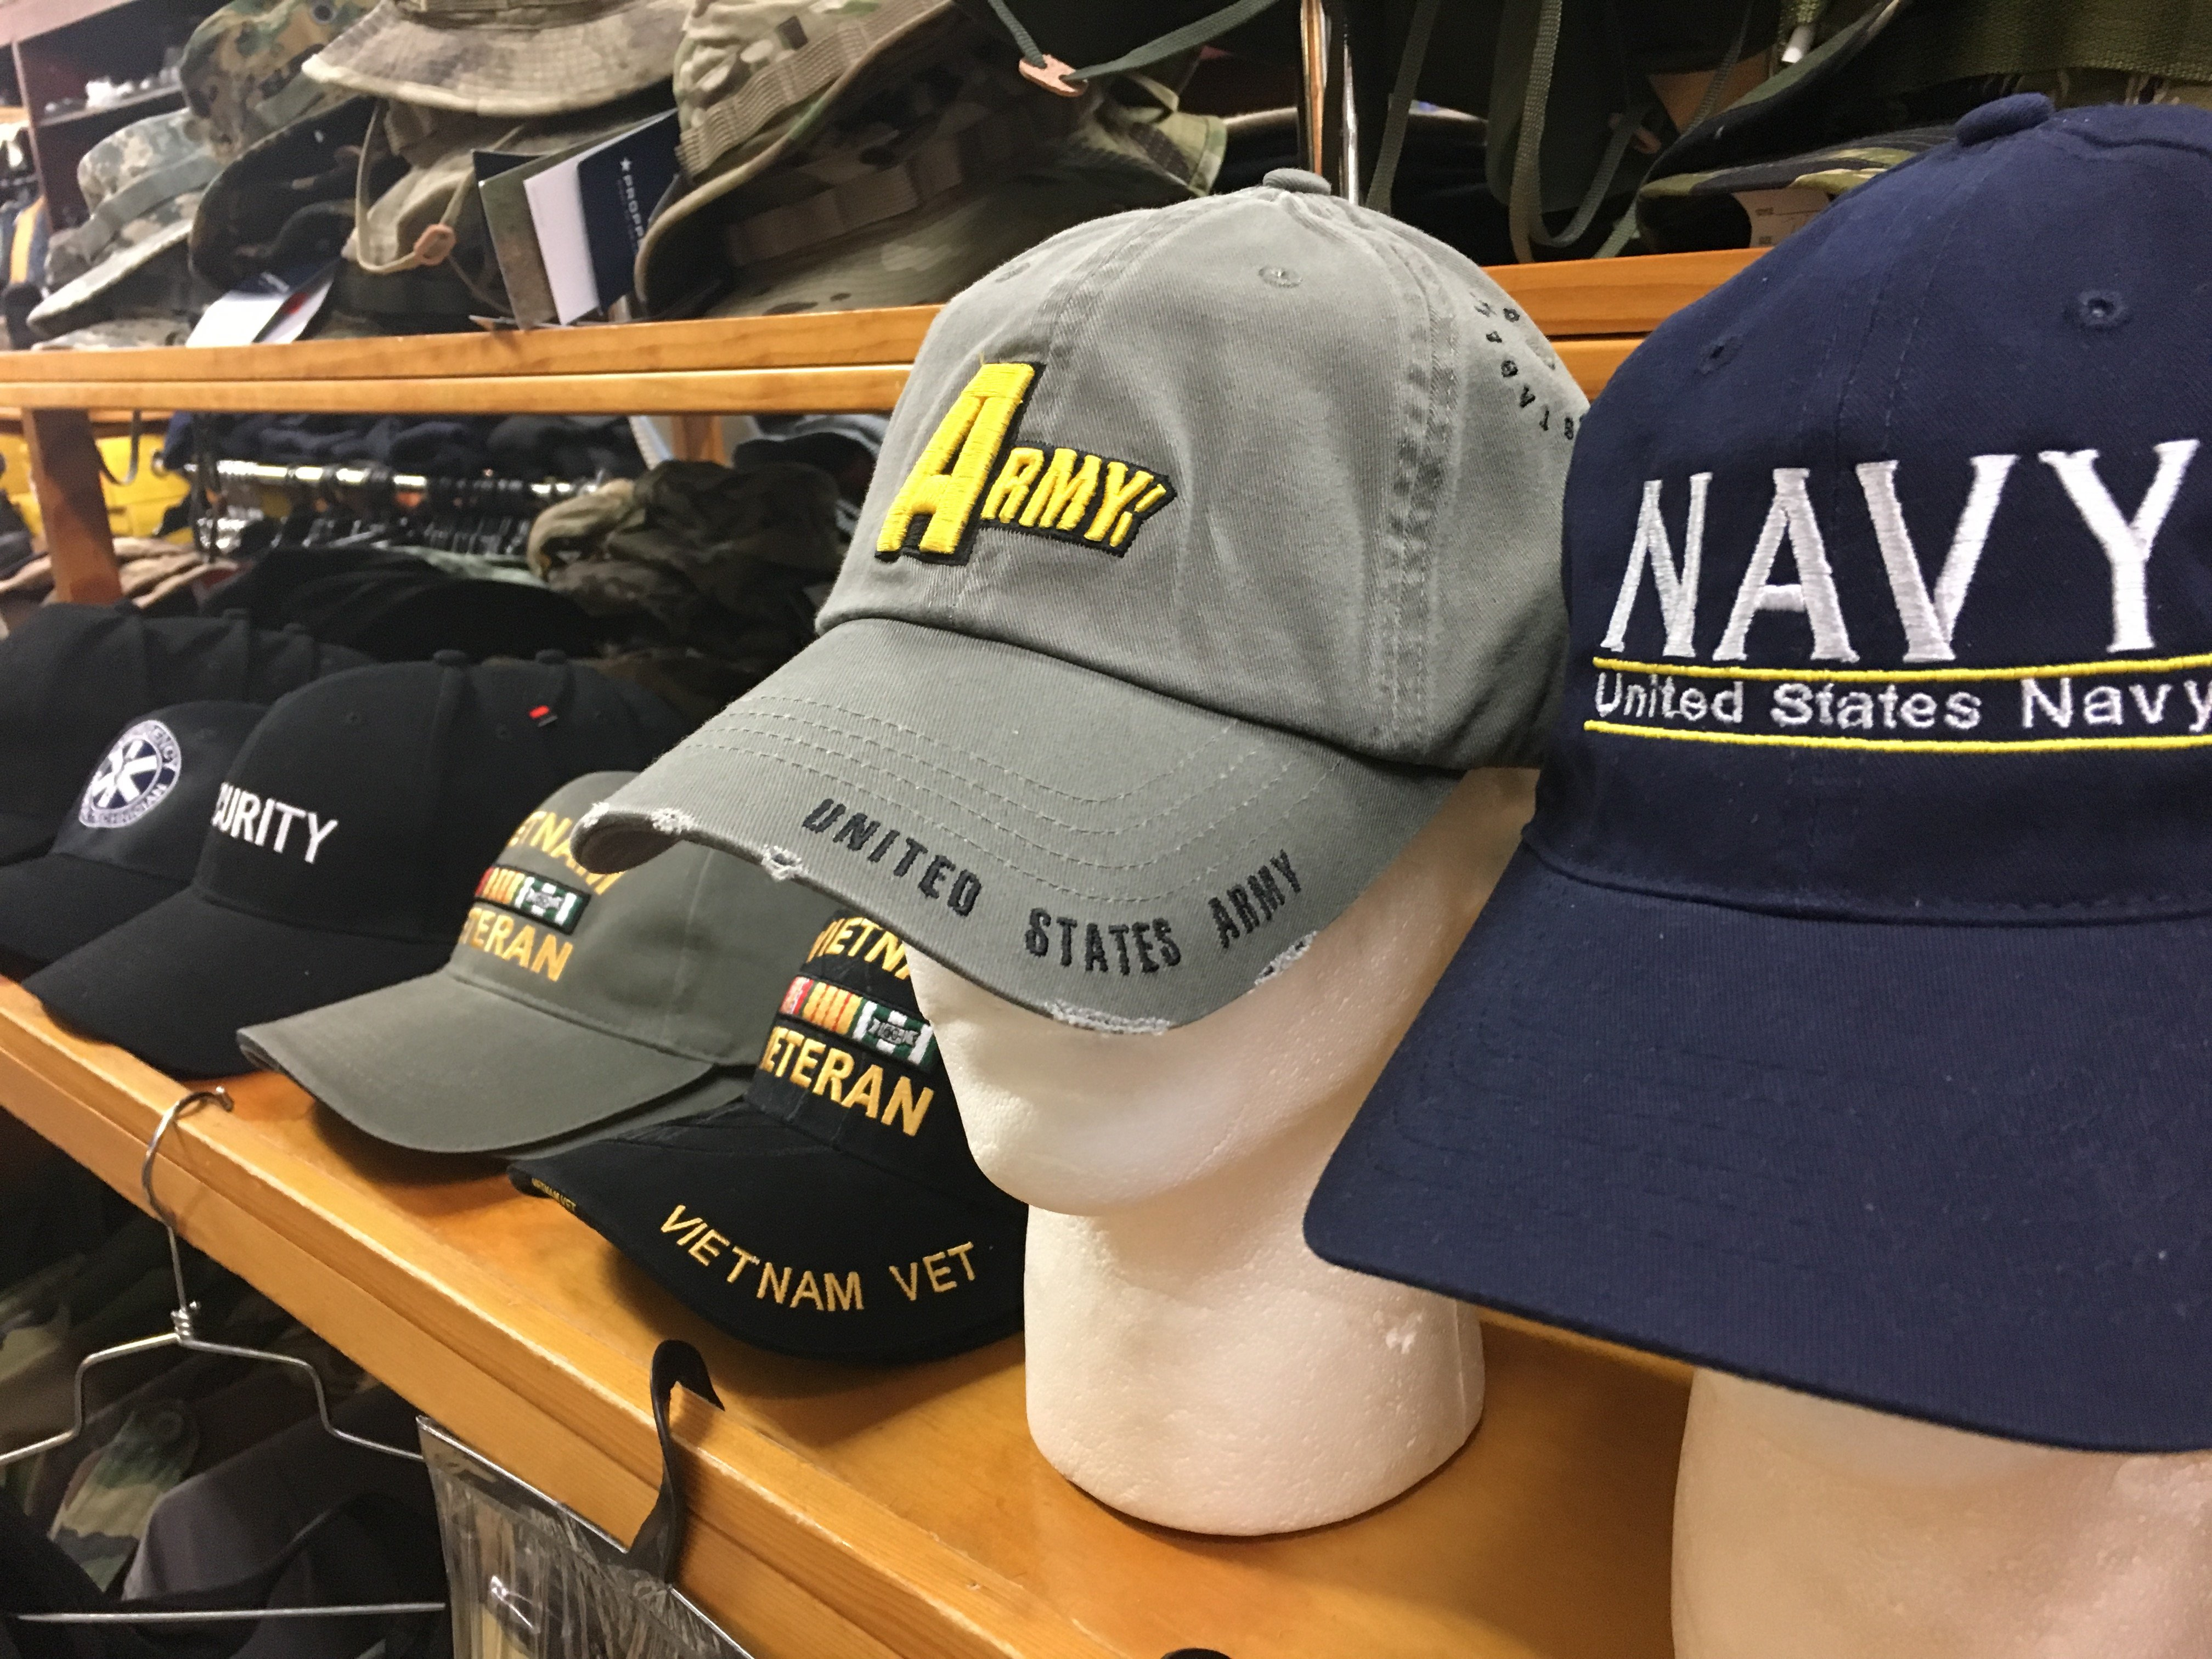 Items at Hartsville Army Navy